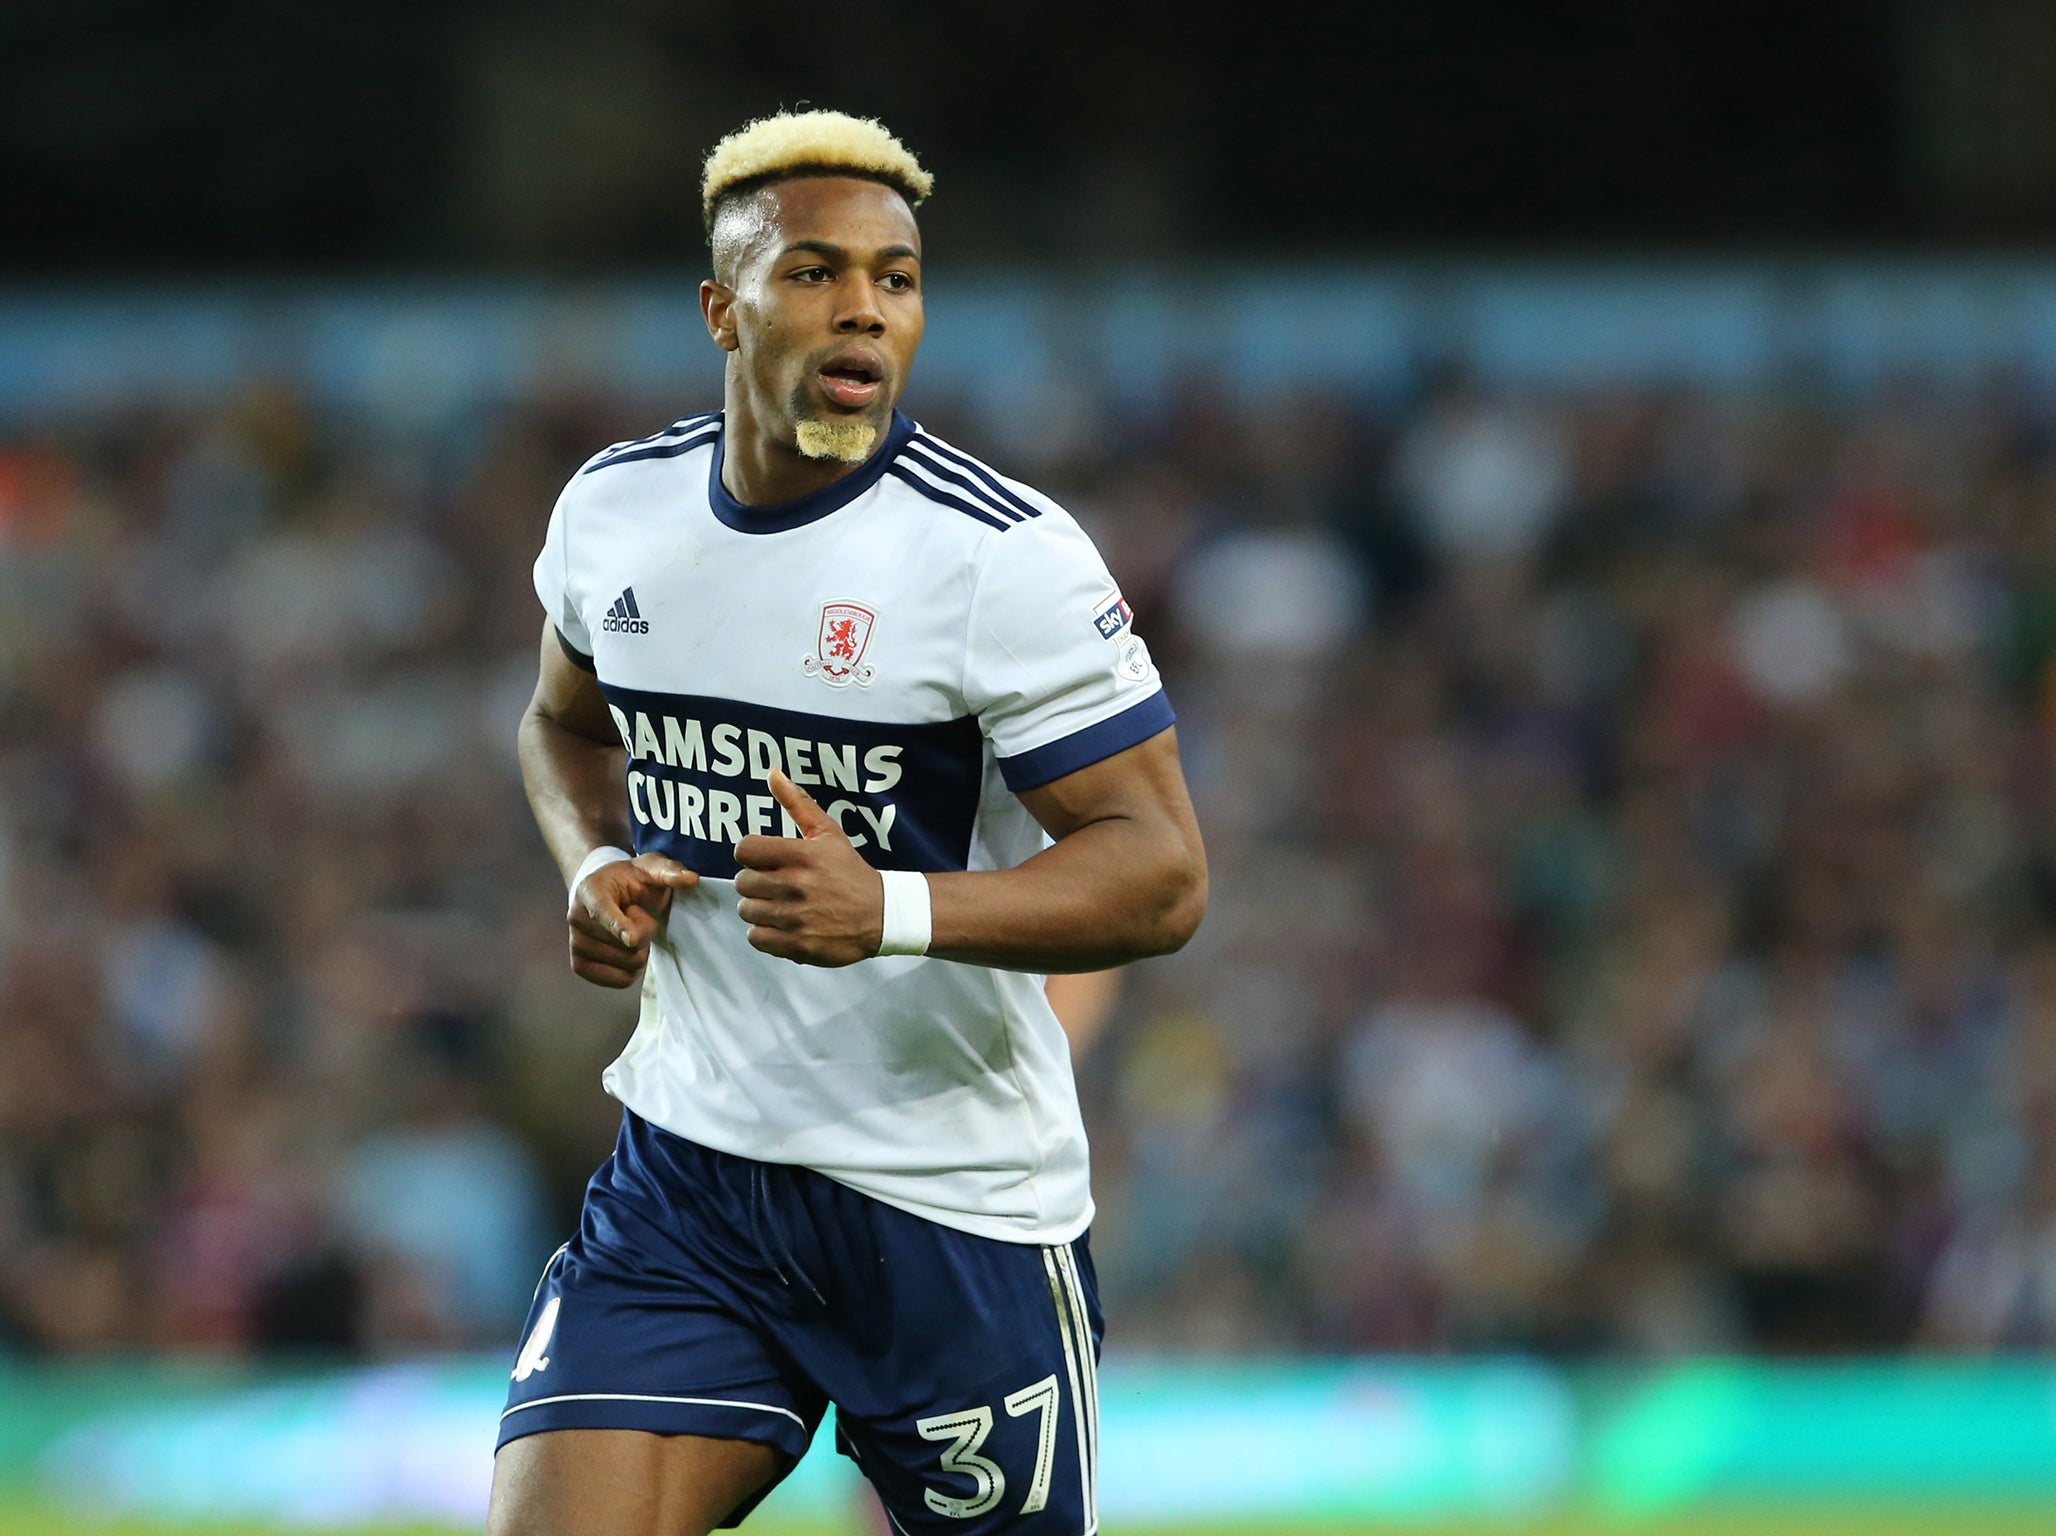 Transfer news: Wolves considering triggering Middlesbrough winger Adama Traore's release clause